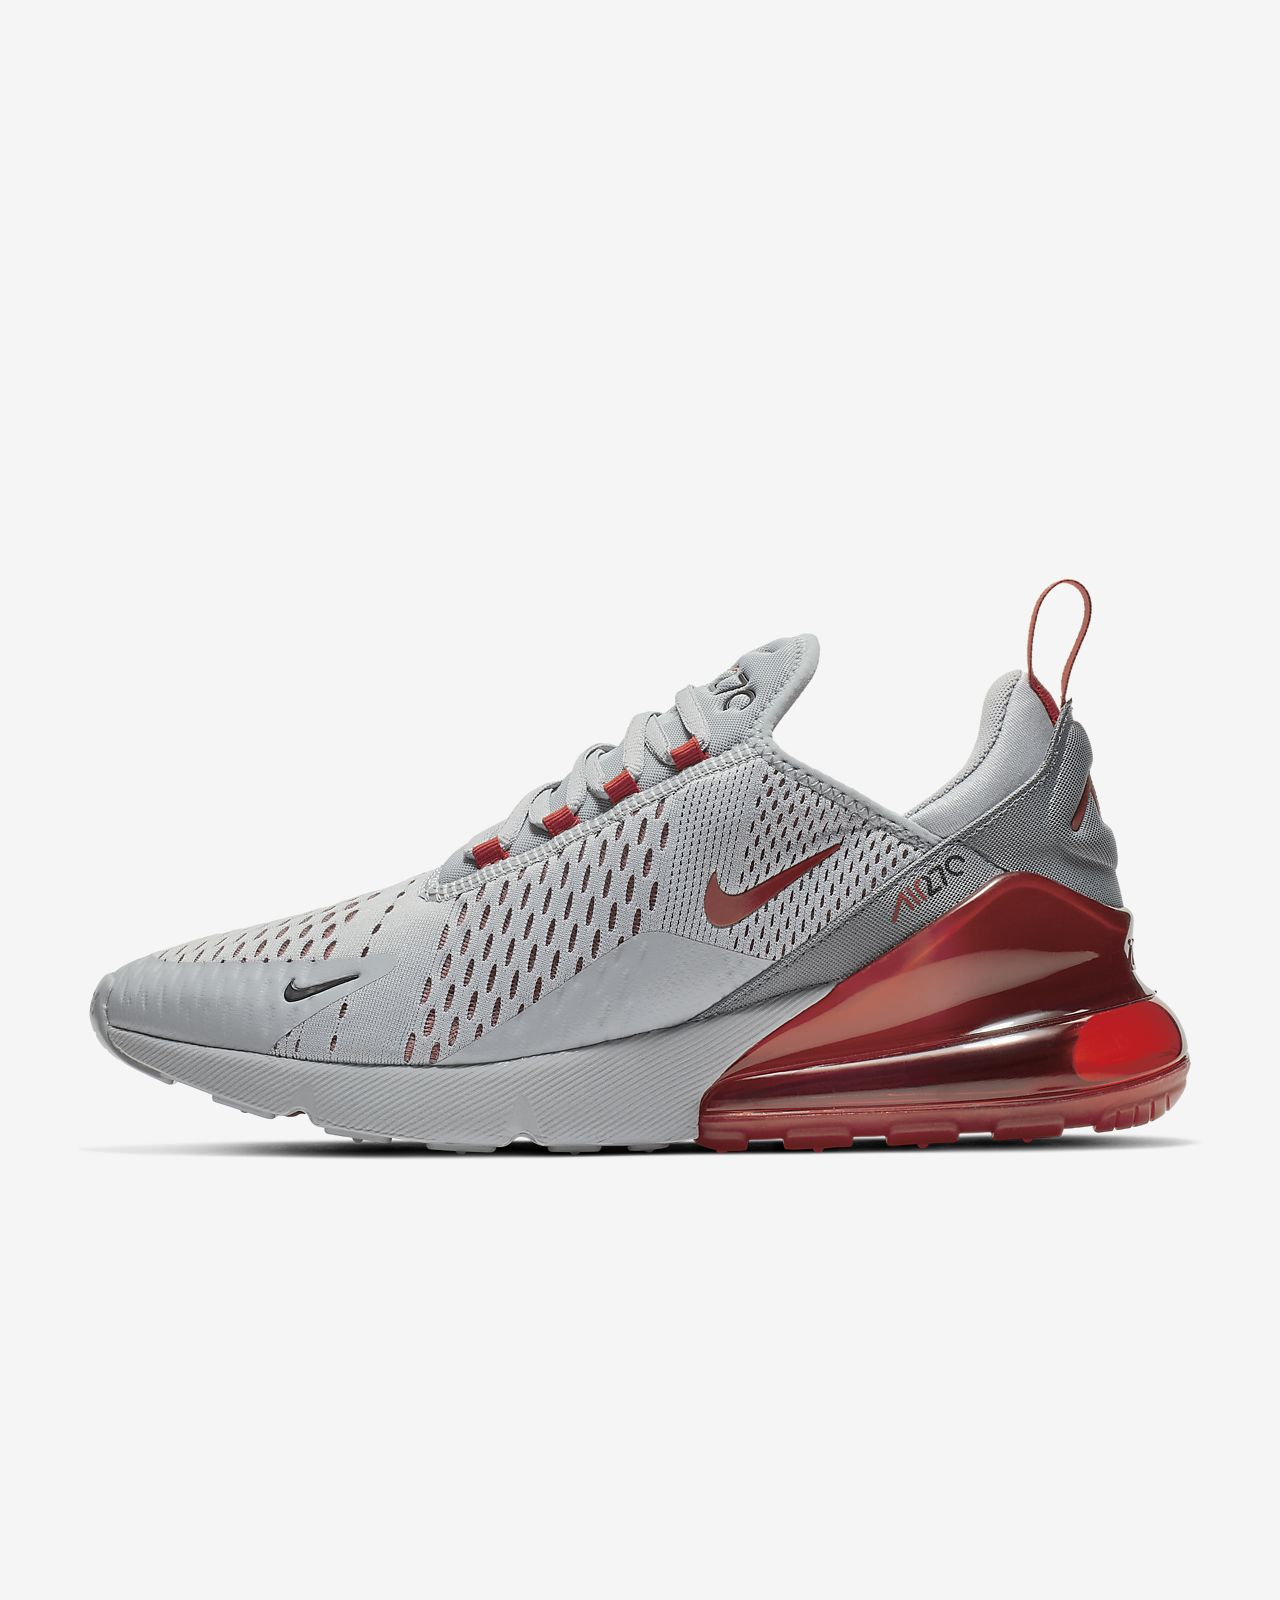 meet 9dc67 a5a3d Men s Shoe. Nike Air Max 270